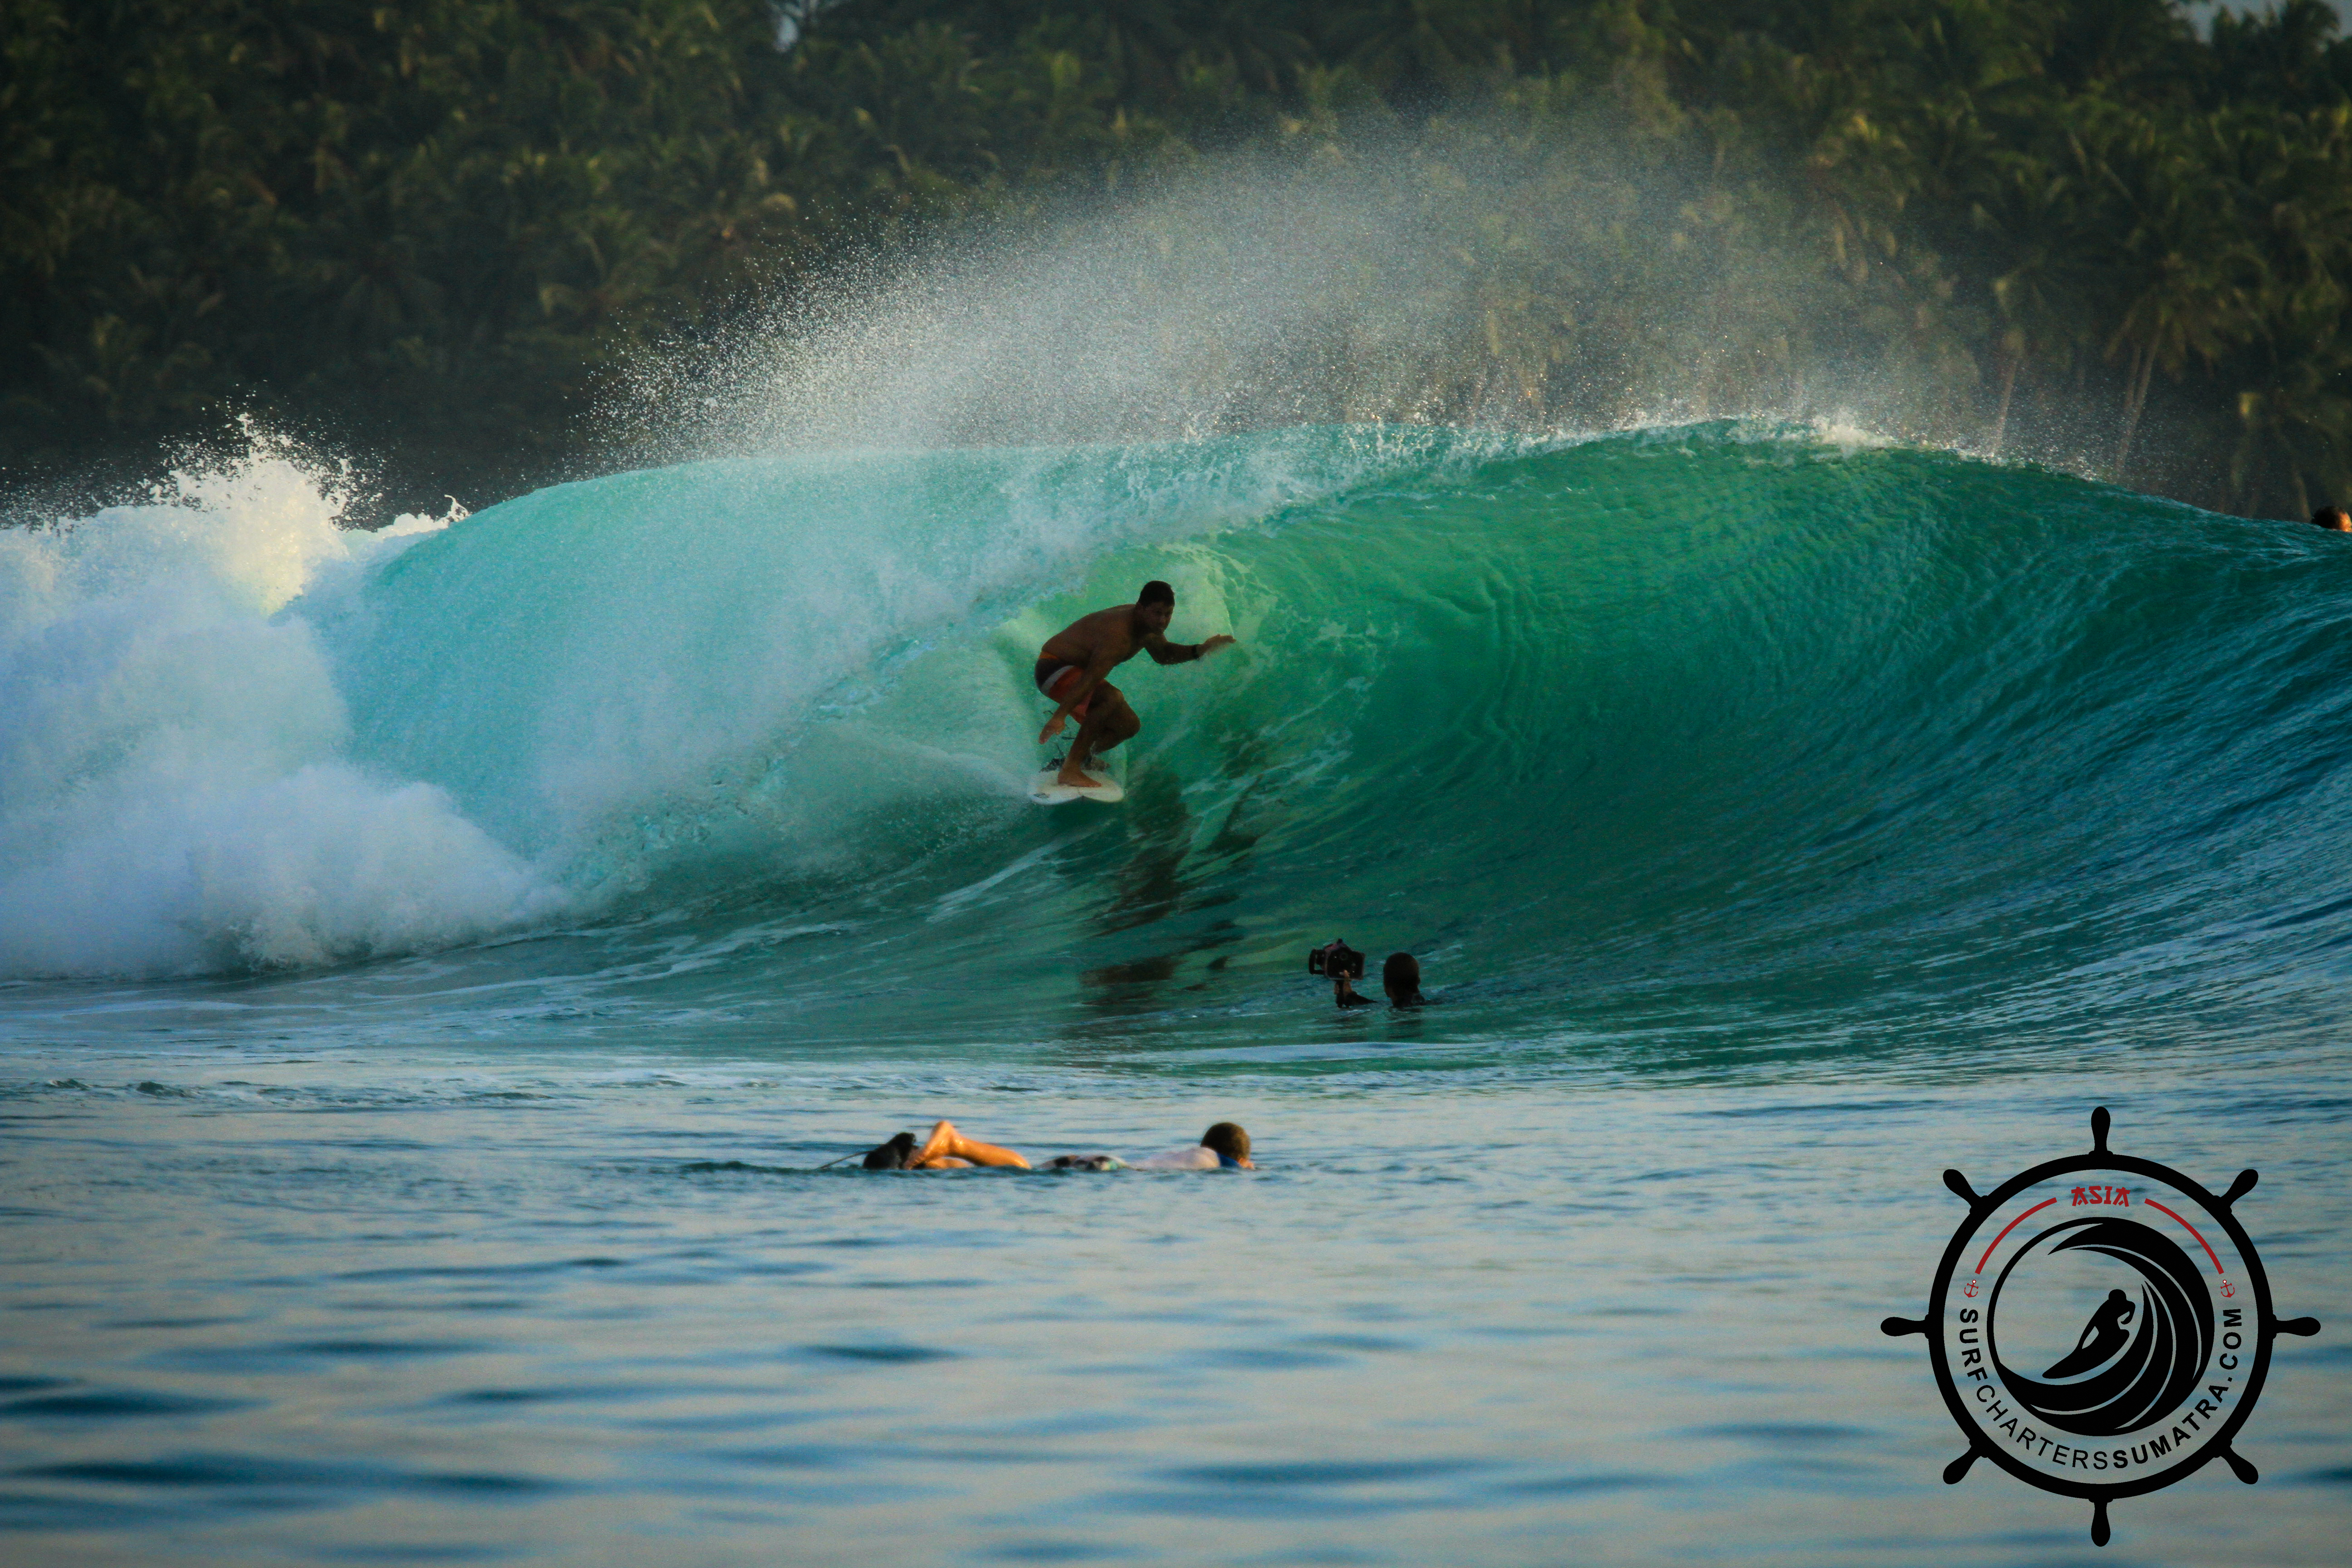 EBAYS MENTAWAI WAVE